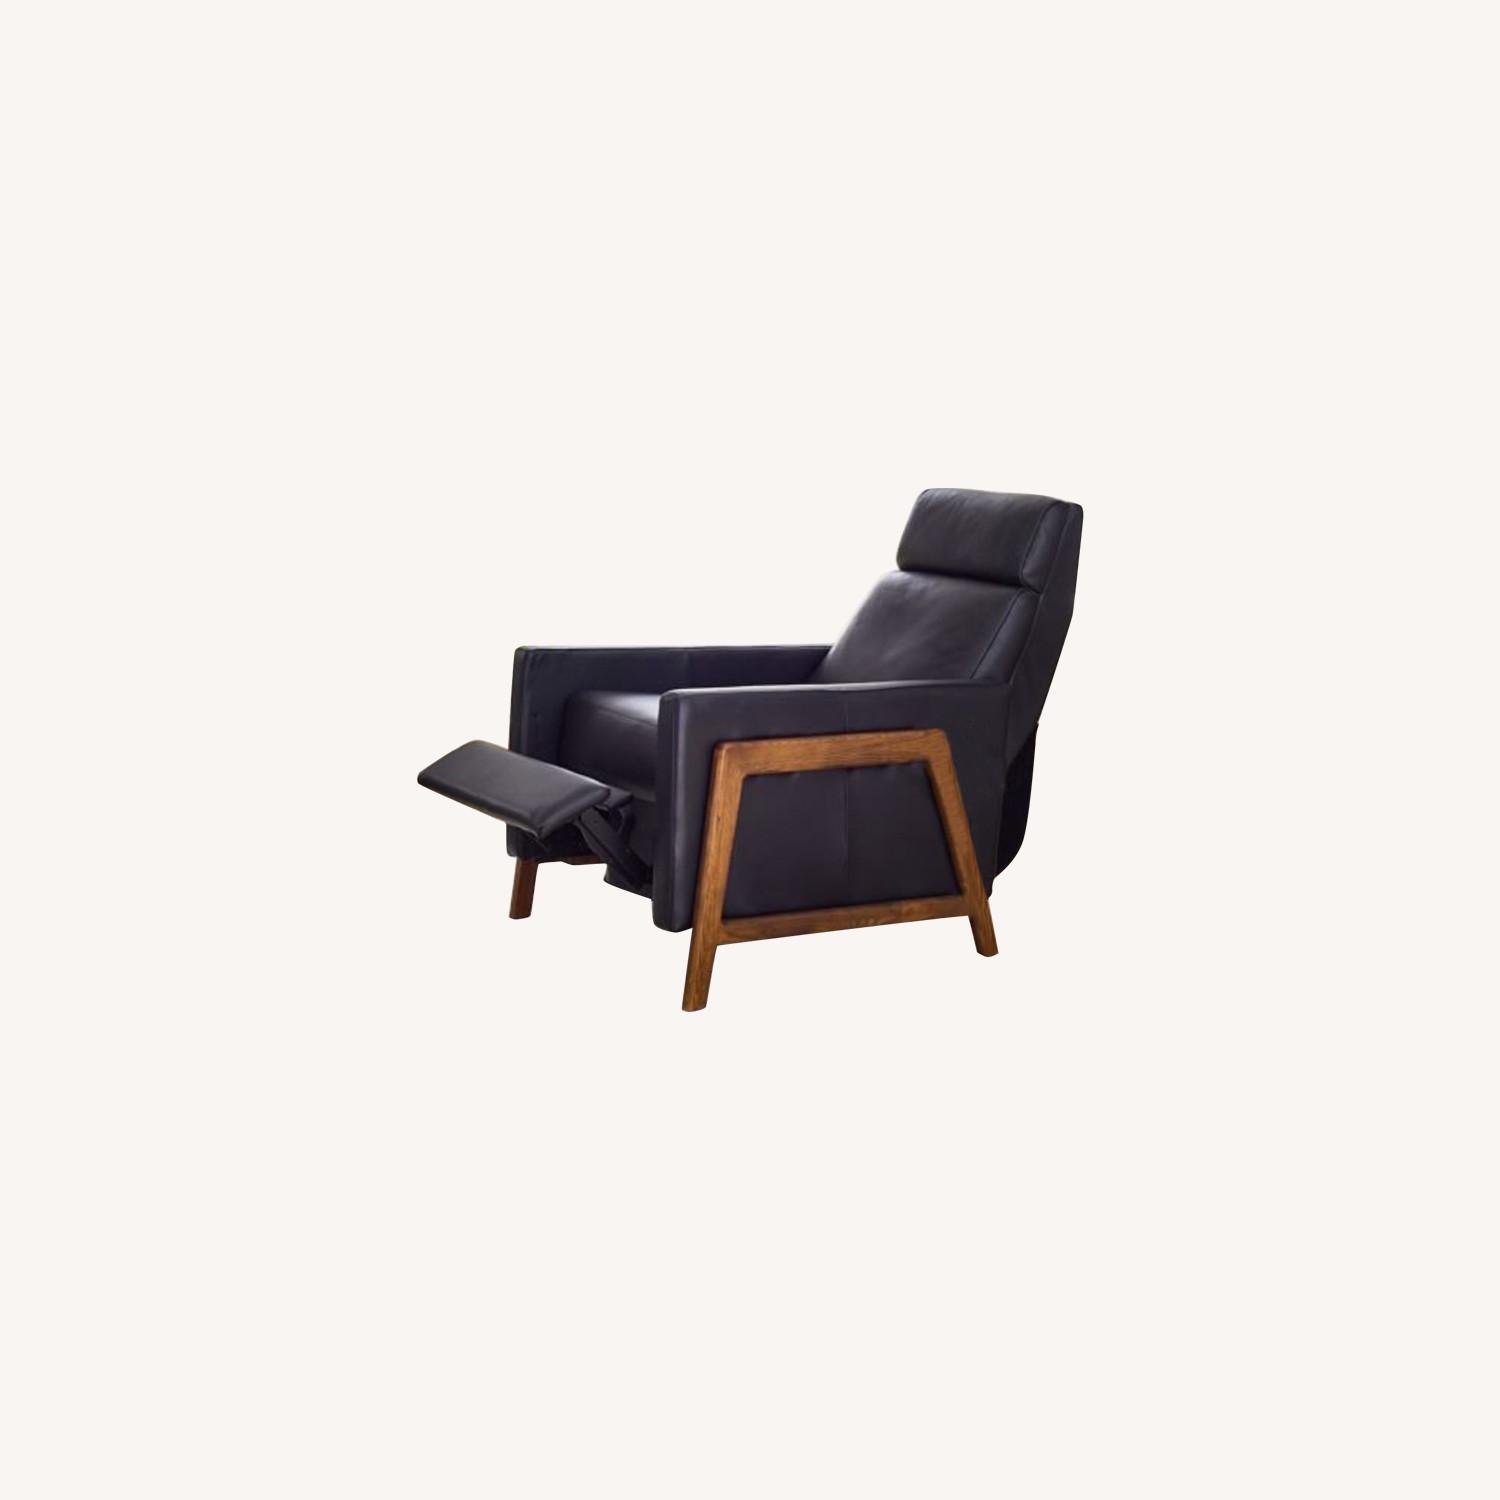 West Elm Black Leather Recliner Chair - image-0